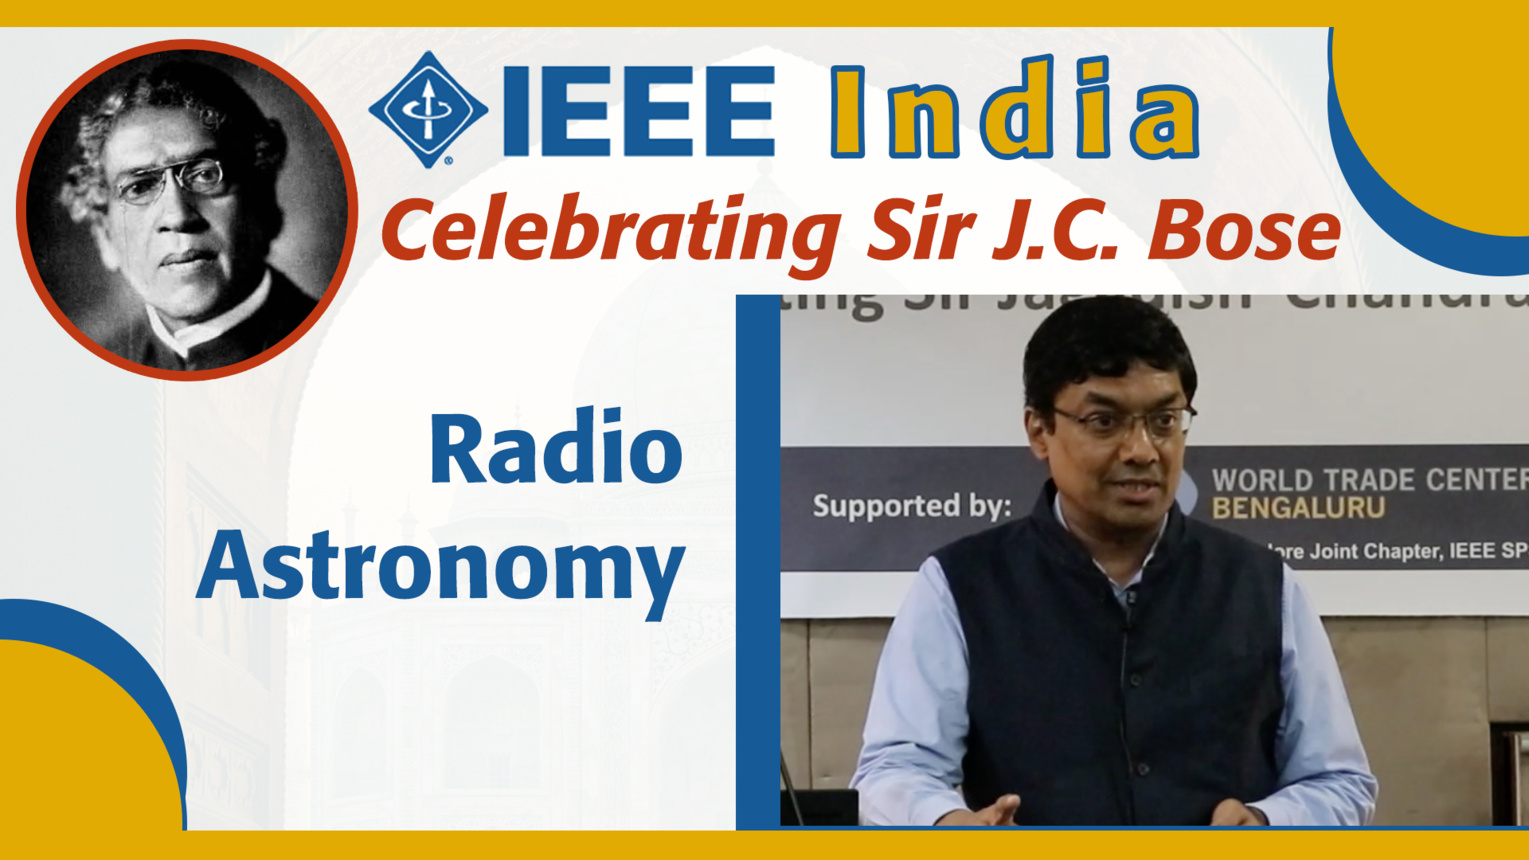 Radio Astronomy: The Impact of Bose's Invention - Yashwant Gupta - IEEE India